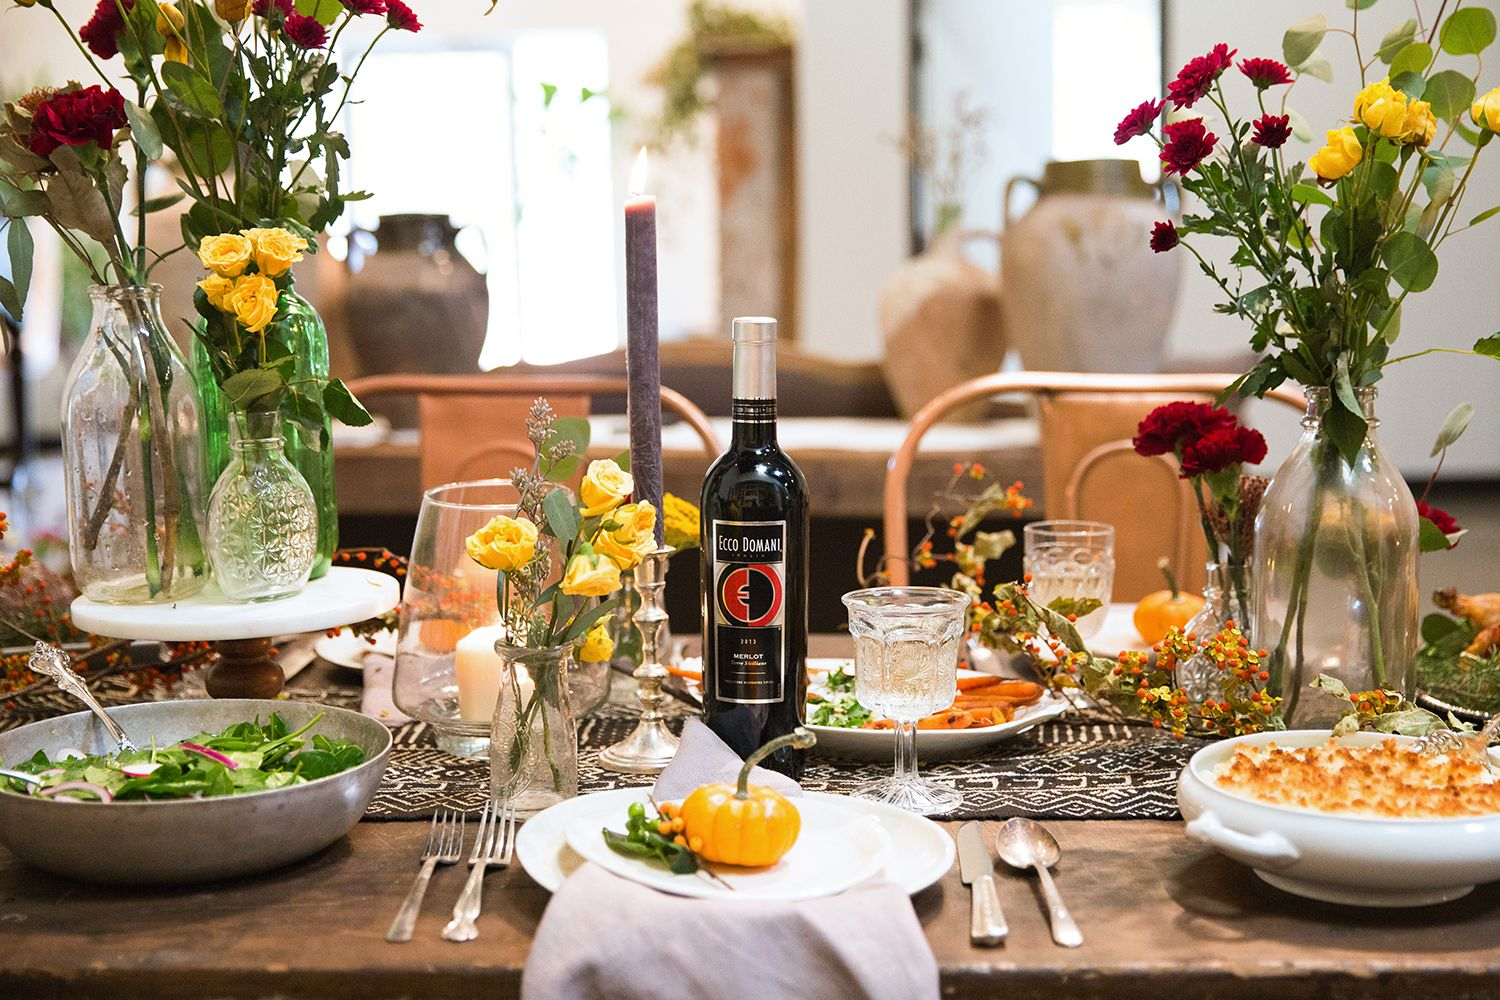 Tis the season to master entertaining at home with style, grace, and ease.